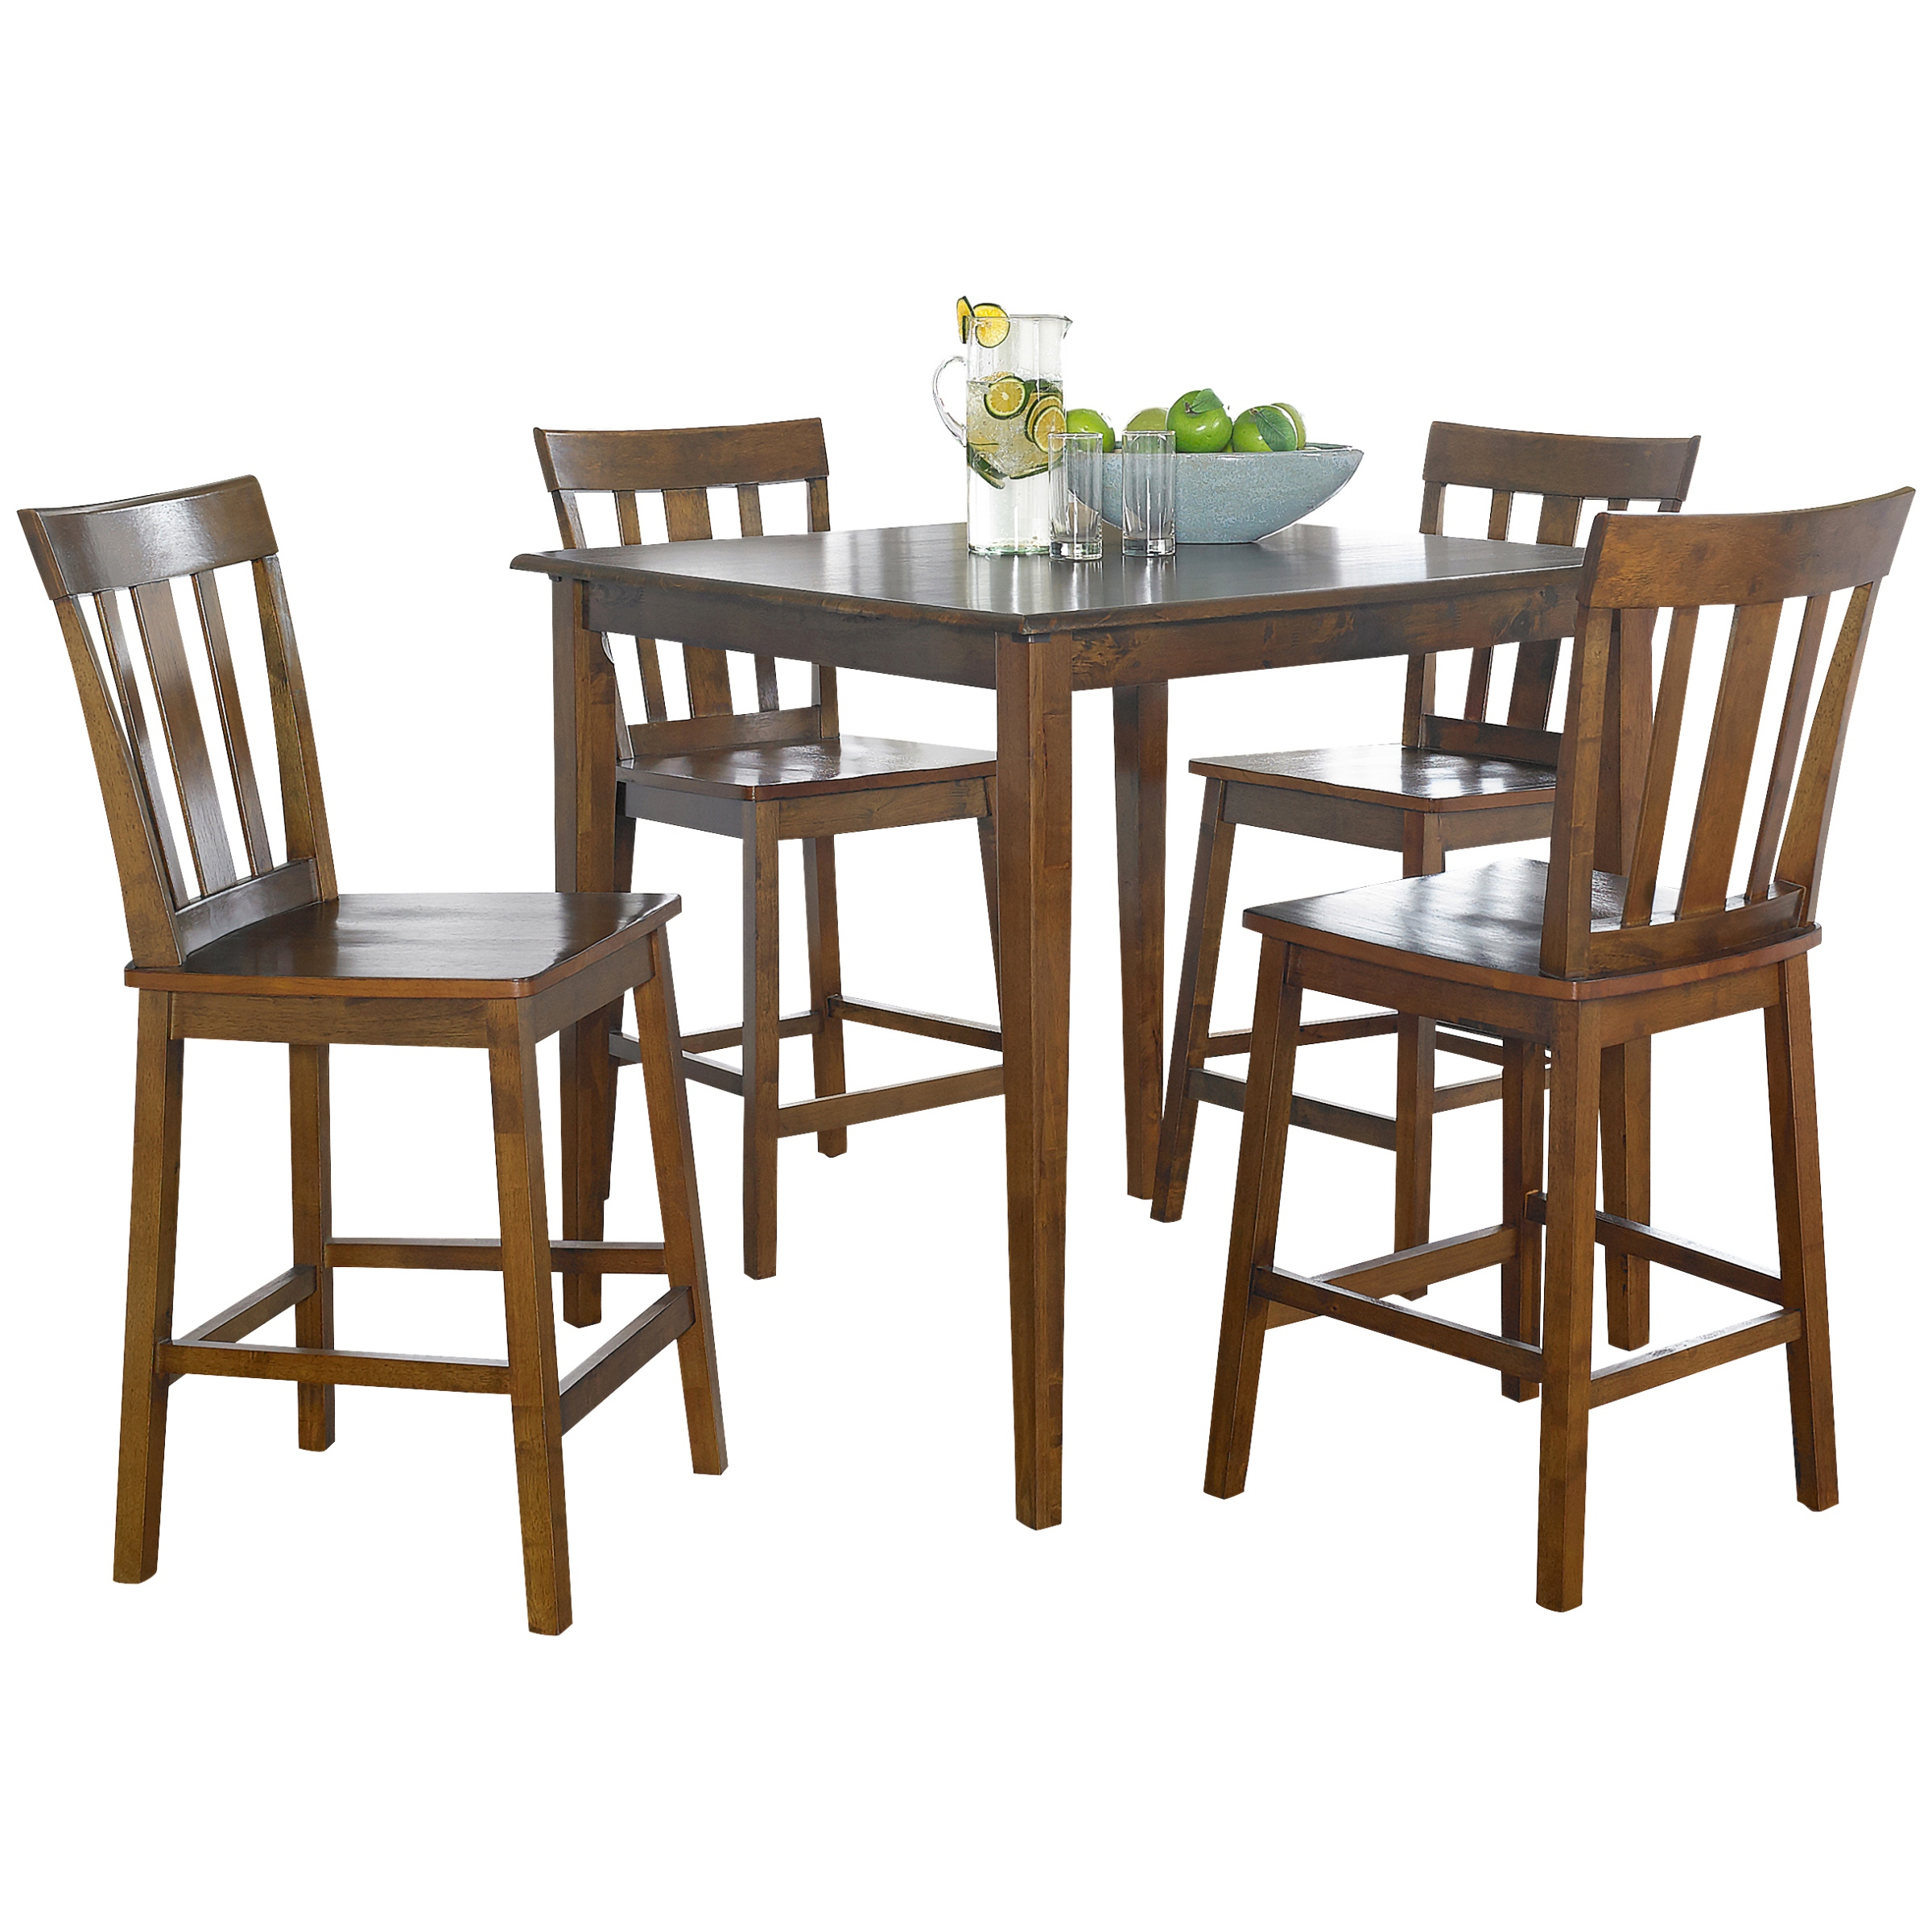 Mainstays 5 Piece Mission Counter Height Dining Set – Walmart Pertaining To Newest Goodman 5 Piece Solid Wood Dining Sets (Set Of 5) (Image 16 of 20)